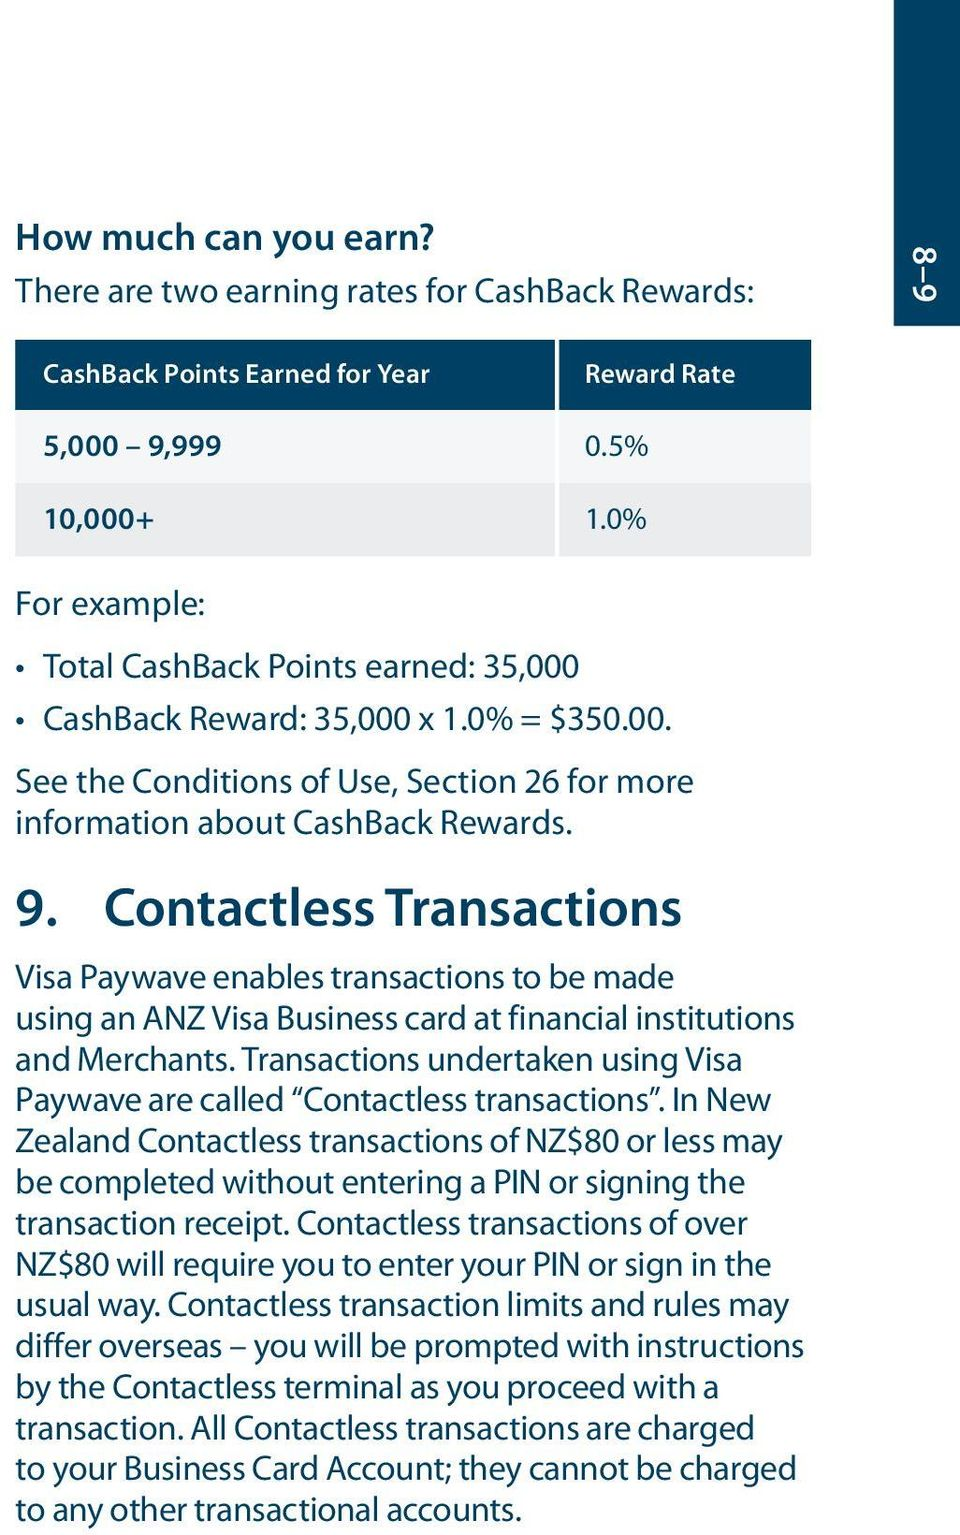 Contactless Transactions Visa Paywave enables transactions to be made using an ANZ Visa Business card at financial institutions and Merchants.